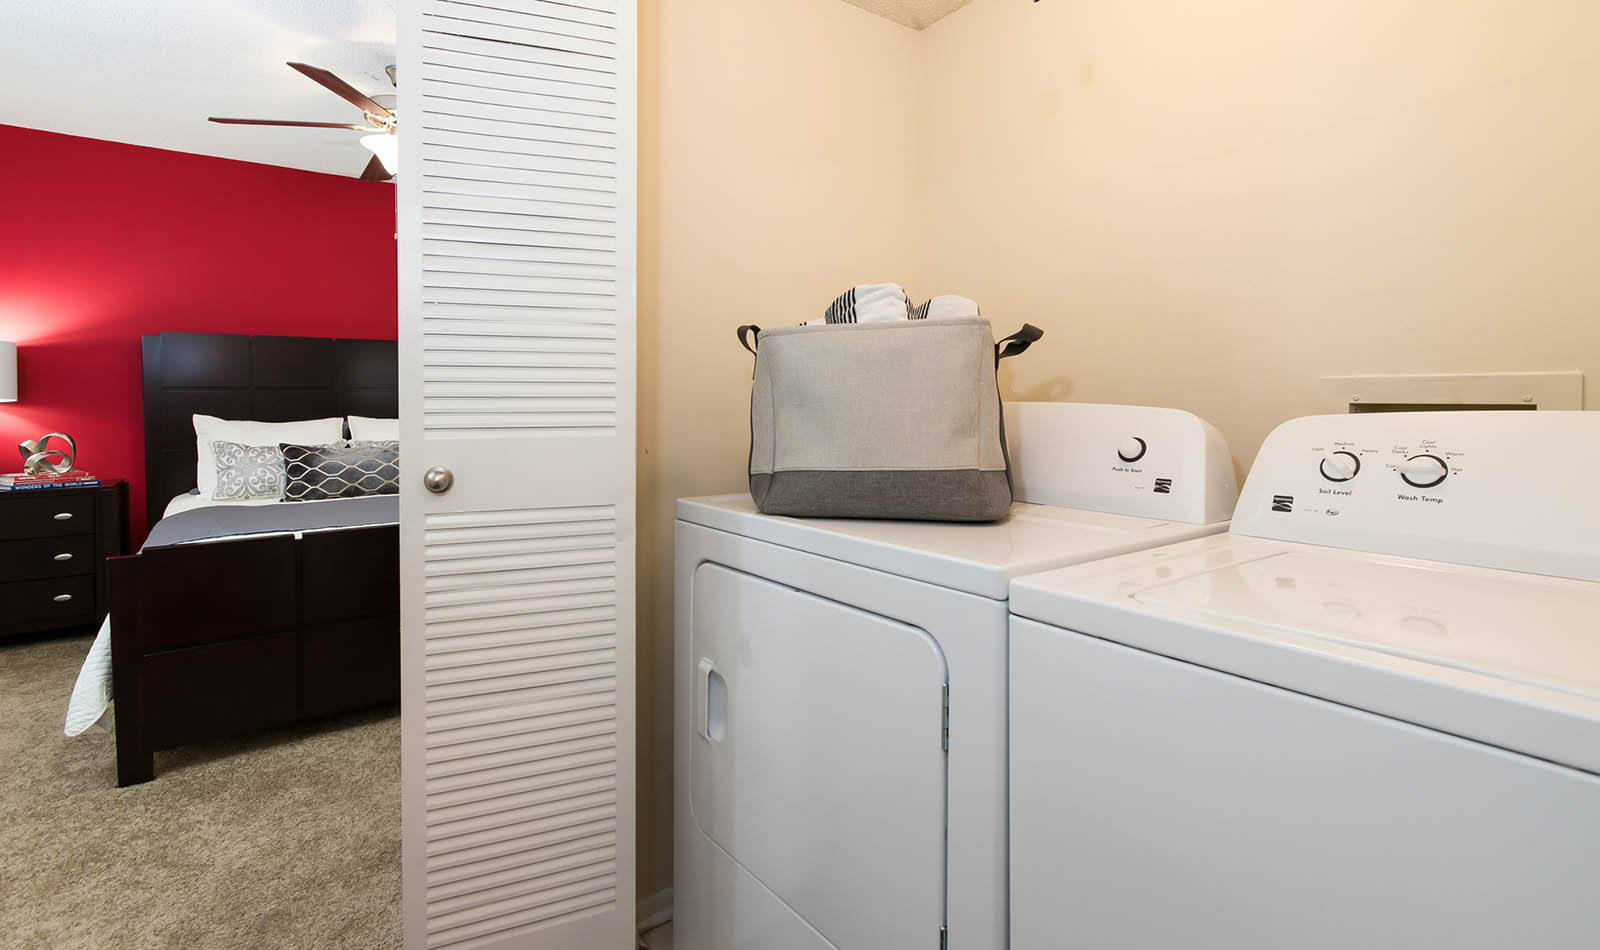 Washer And Dryer at The Reserve at Mandarin in Jacksonville, FL